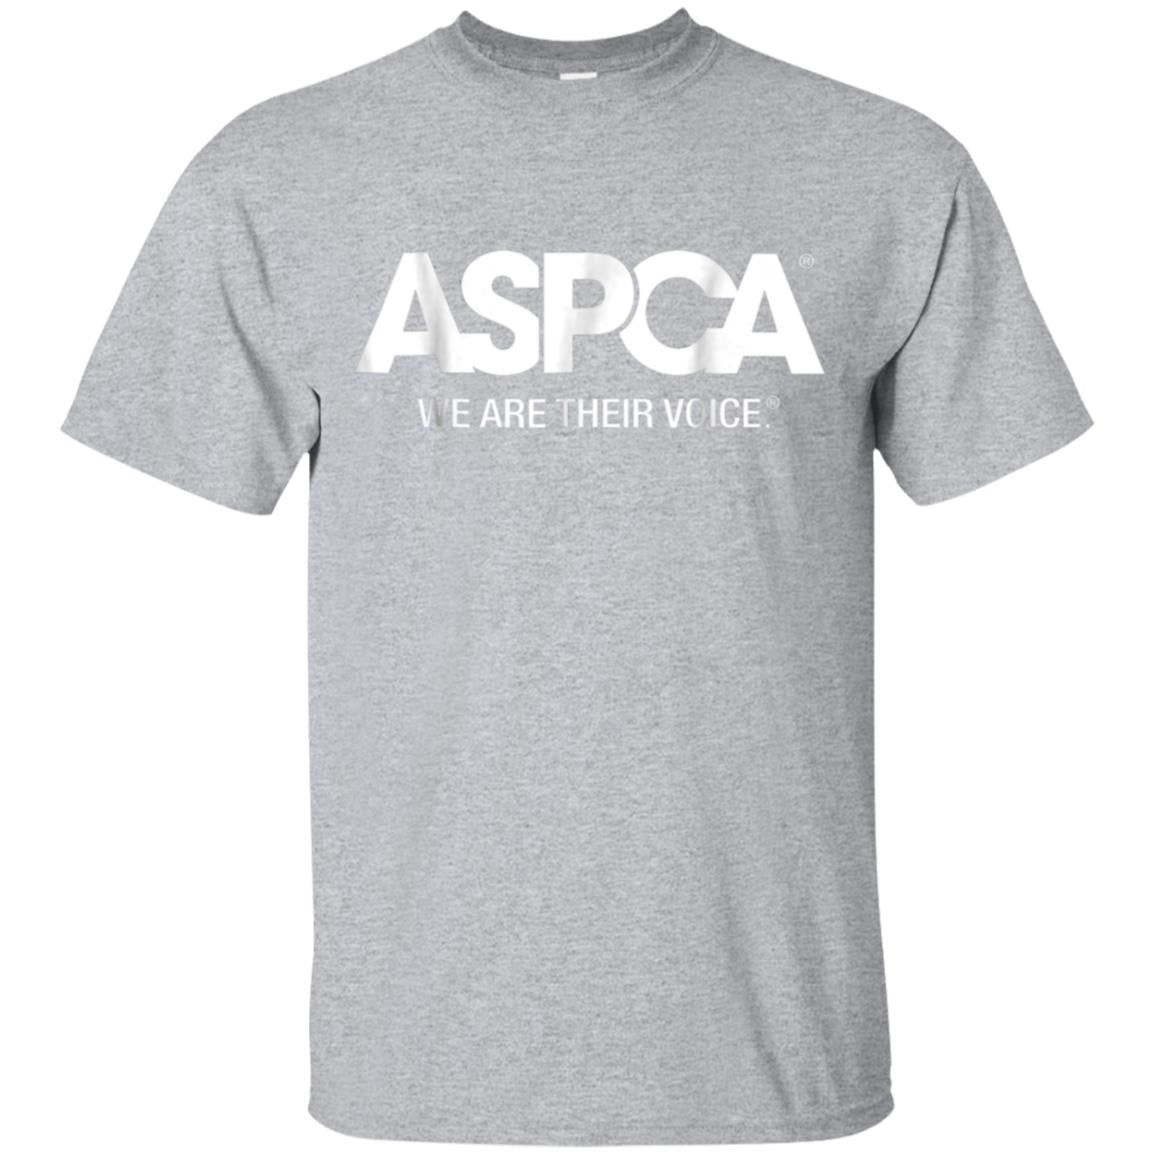 ASPCA We Are Their Voice Logo T-Shirt 99promocode